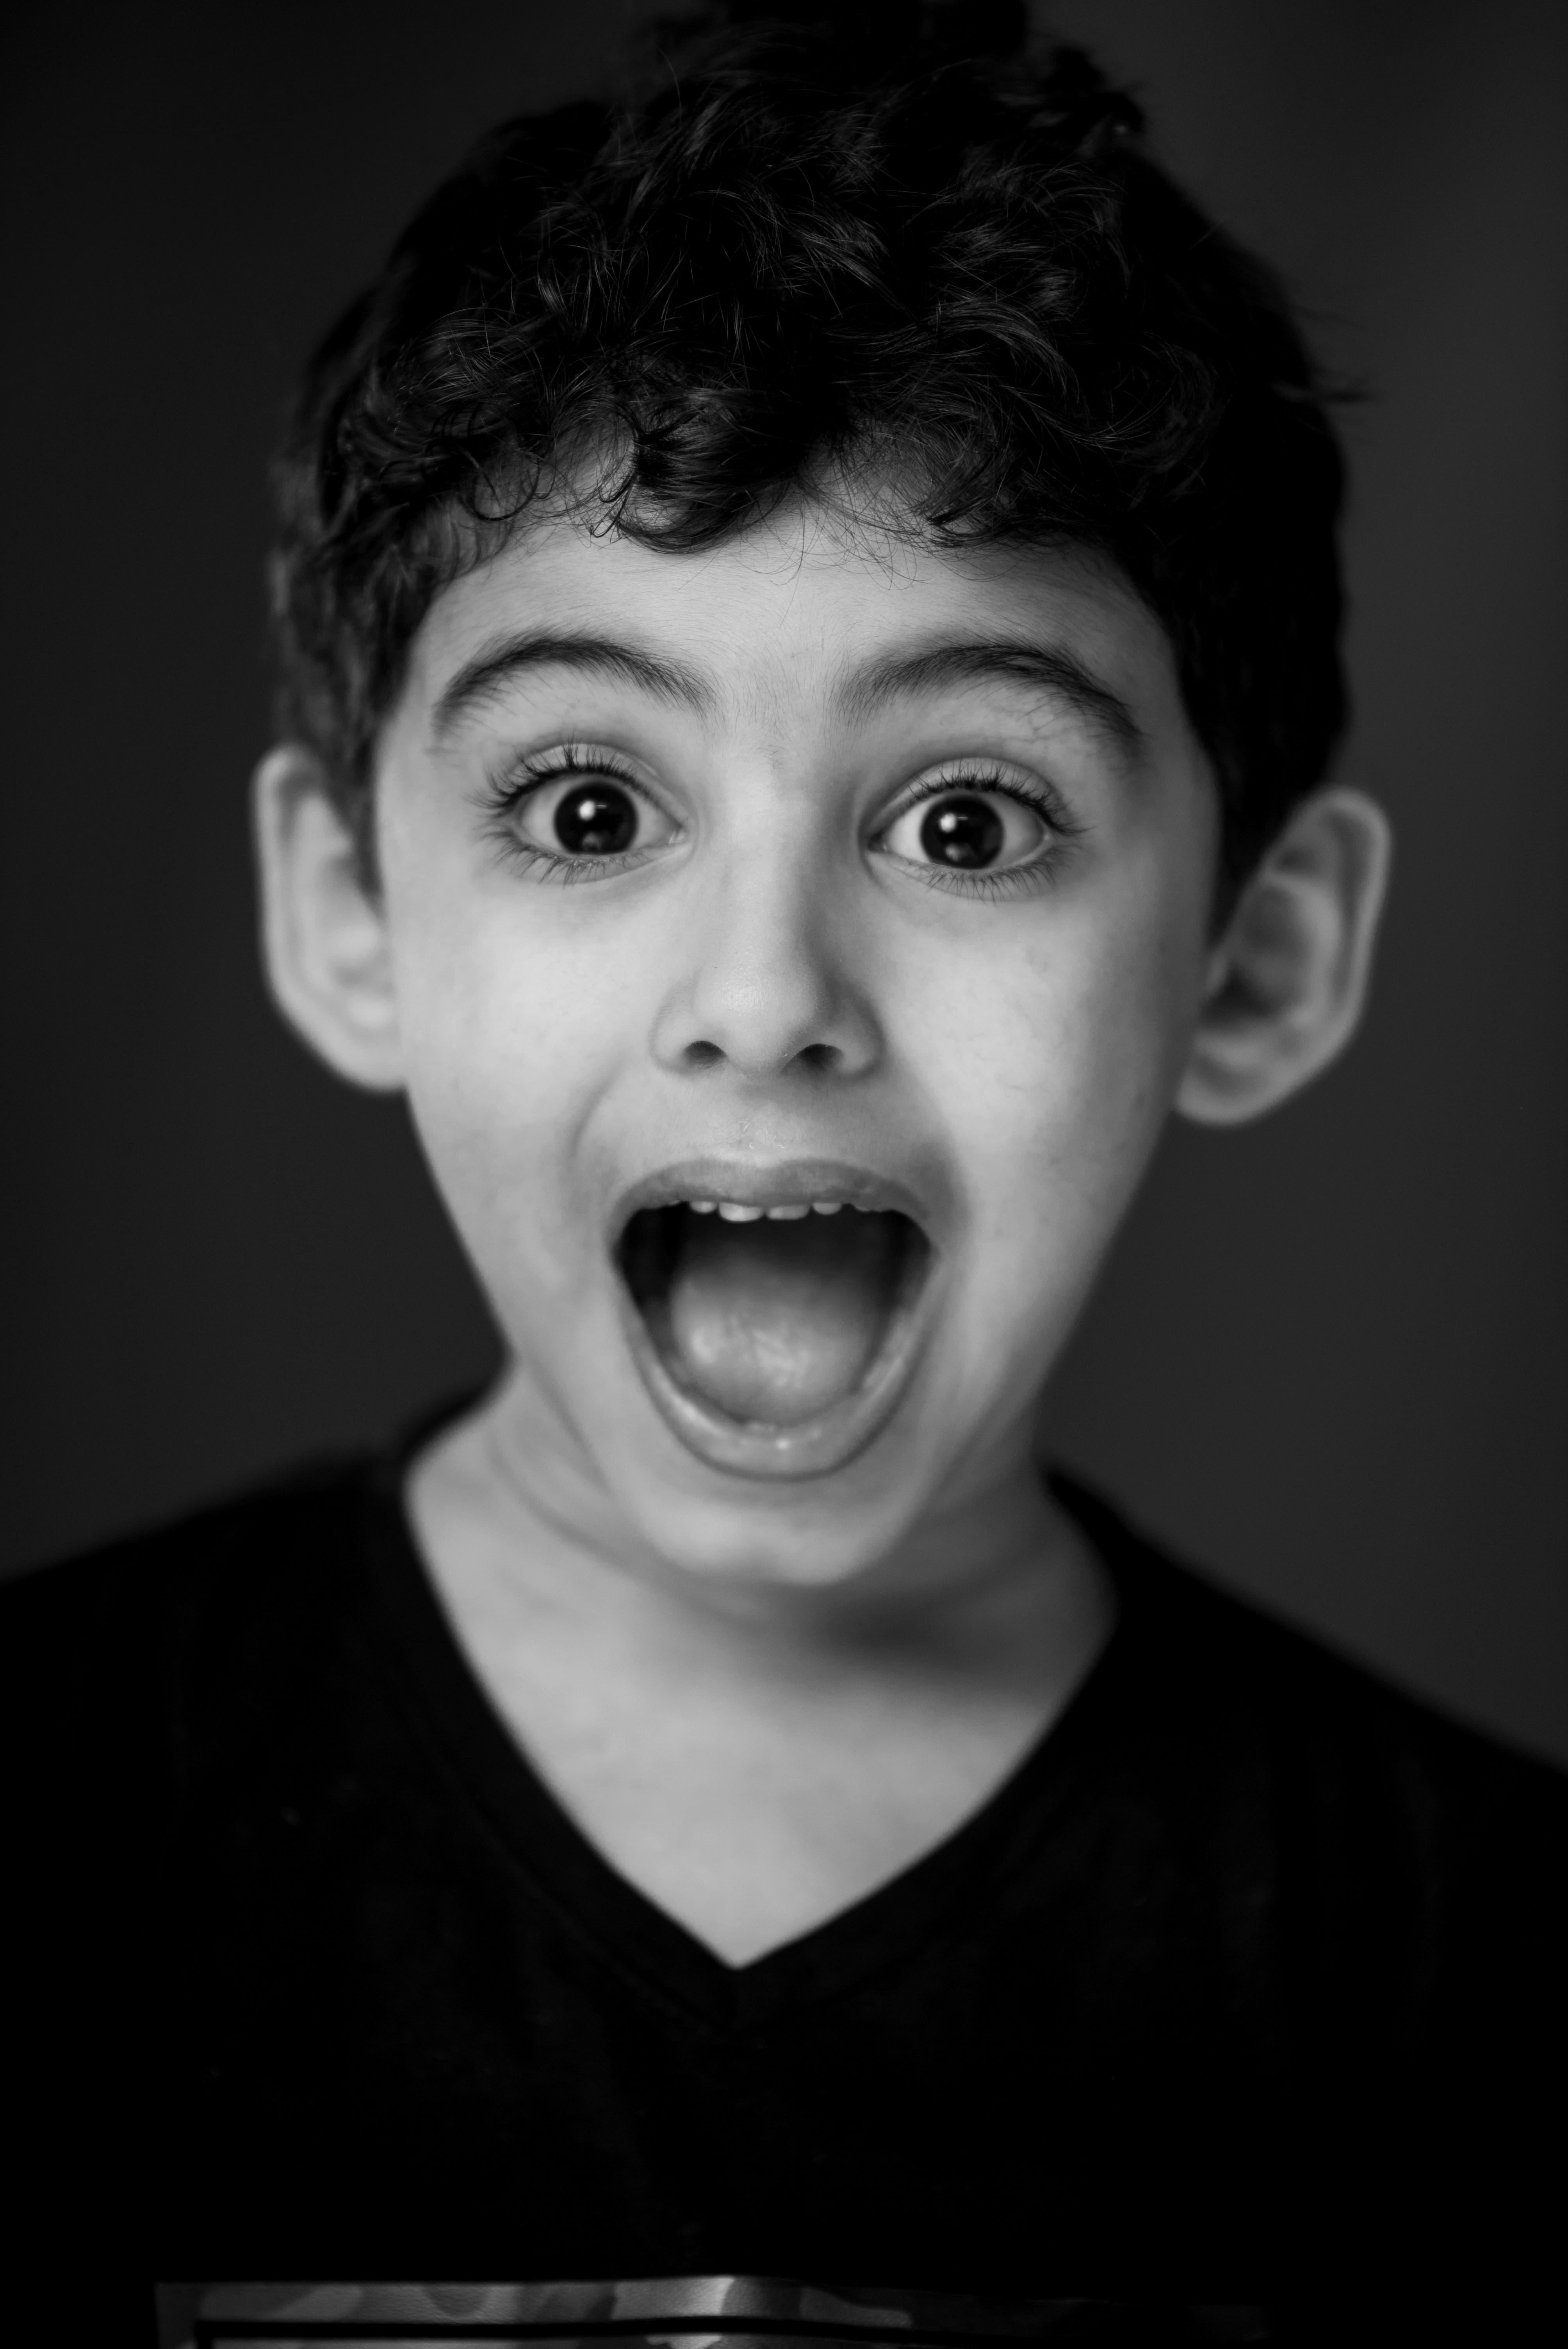 cute kid with smiling, gaping mouth in black and white filter.